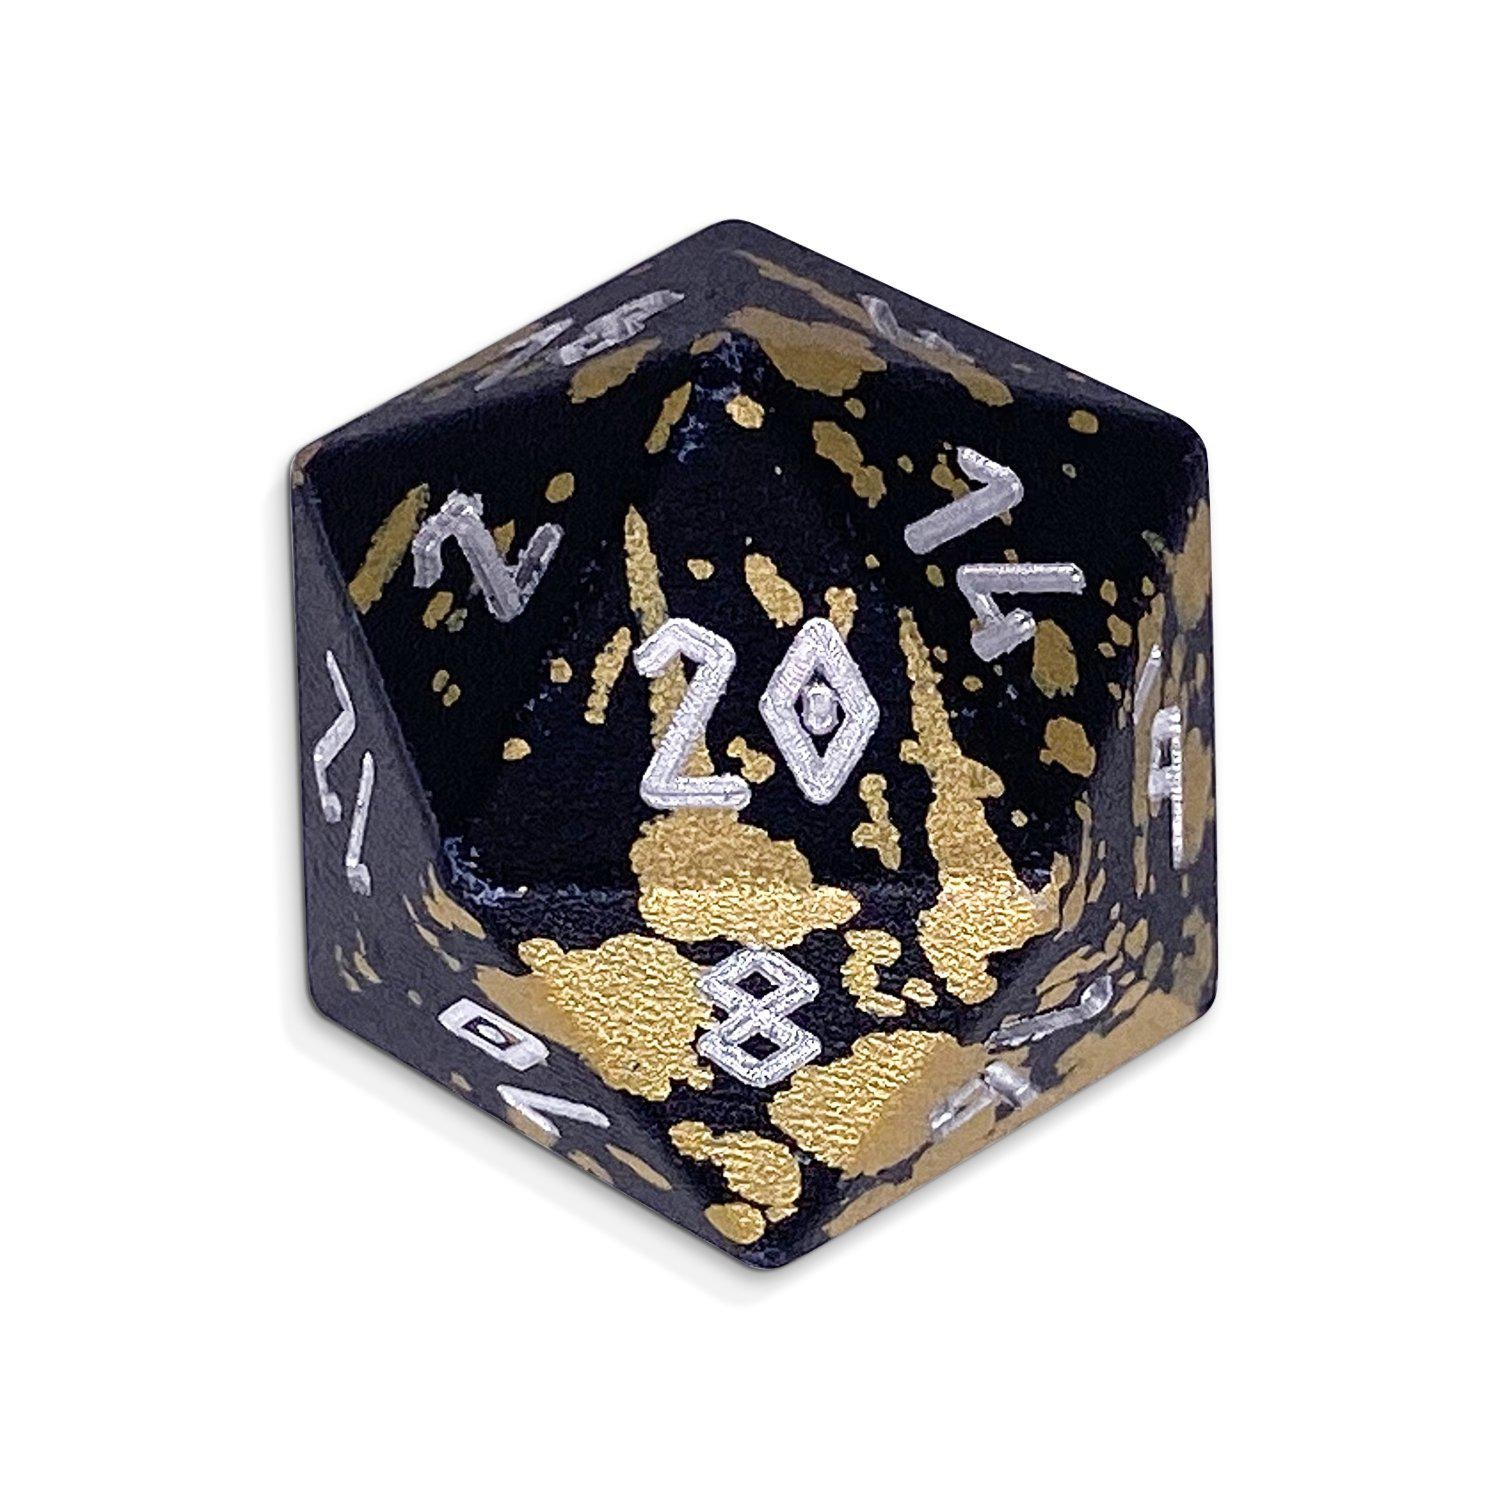 Single Wondrous Dice® D20 in Great Void by Norse Foundry 6063 Aircraft Grade Aluminum